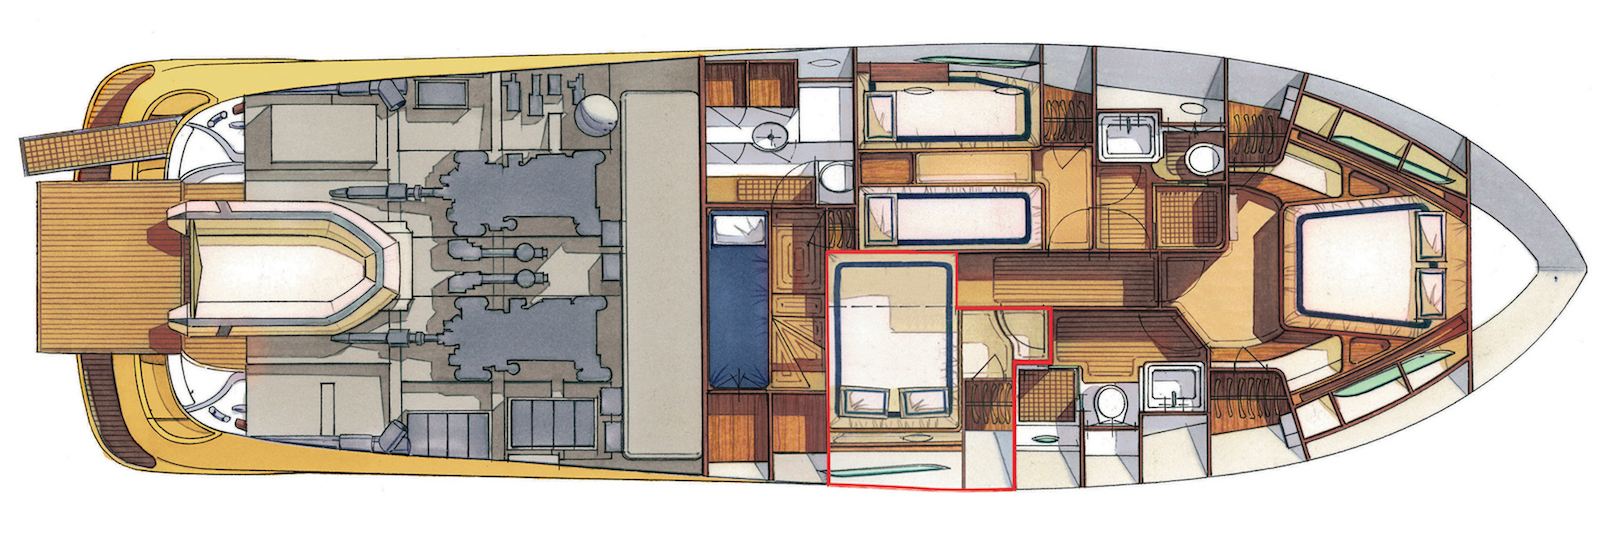 Mochi Craft Dolphin 54' Layout (img-4)